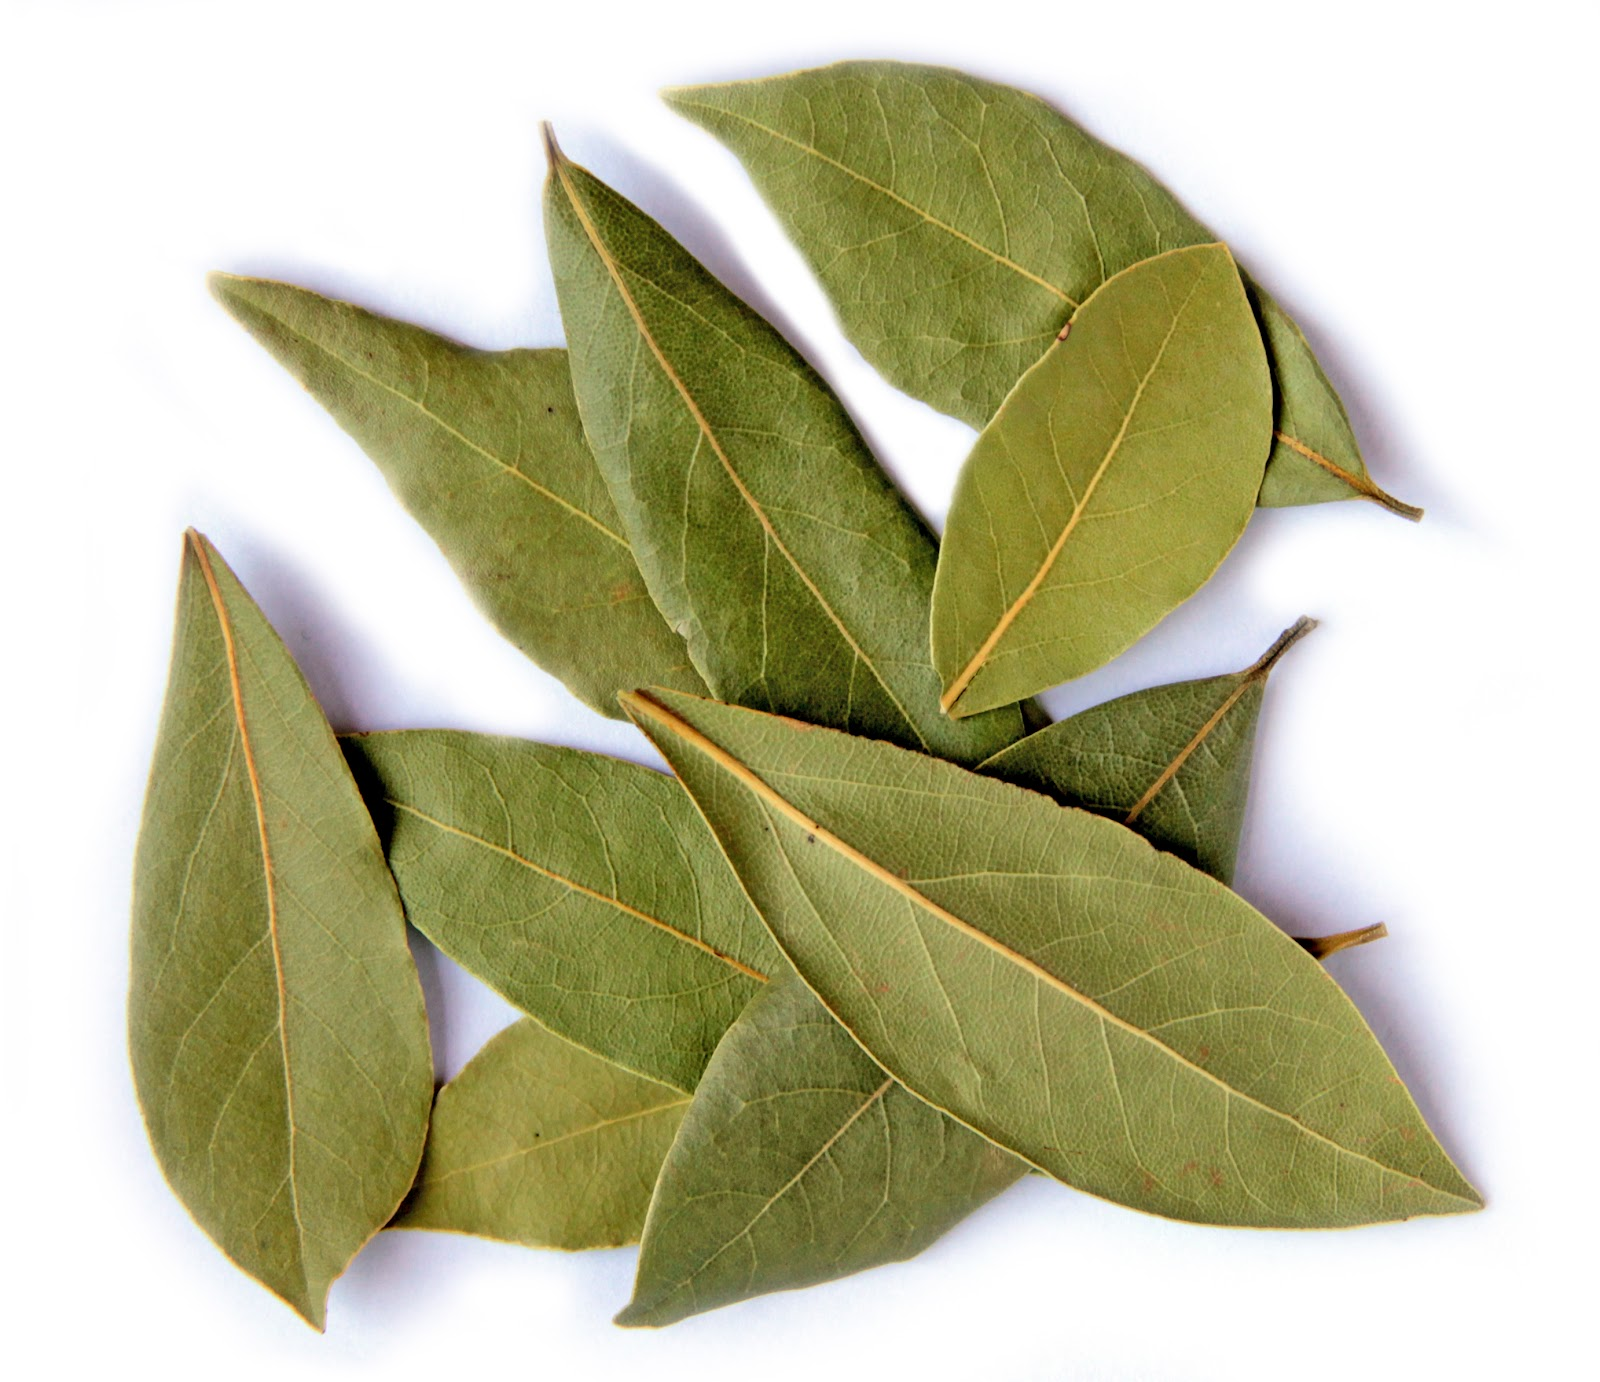 Biodiversity heritage library for europe spice of the week bay leaf - Cook bay leaves ...